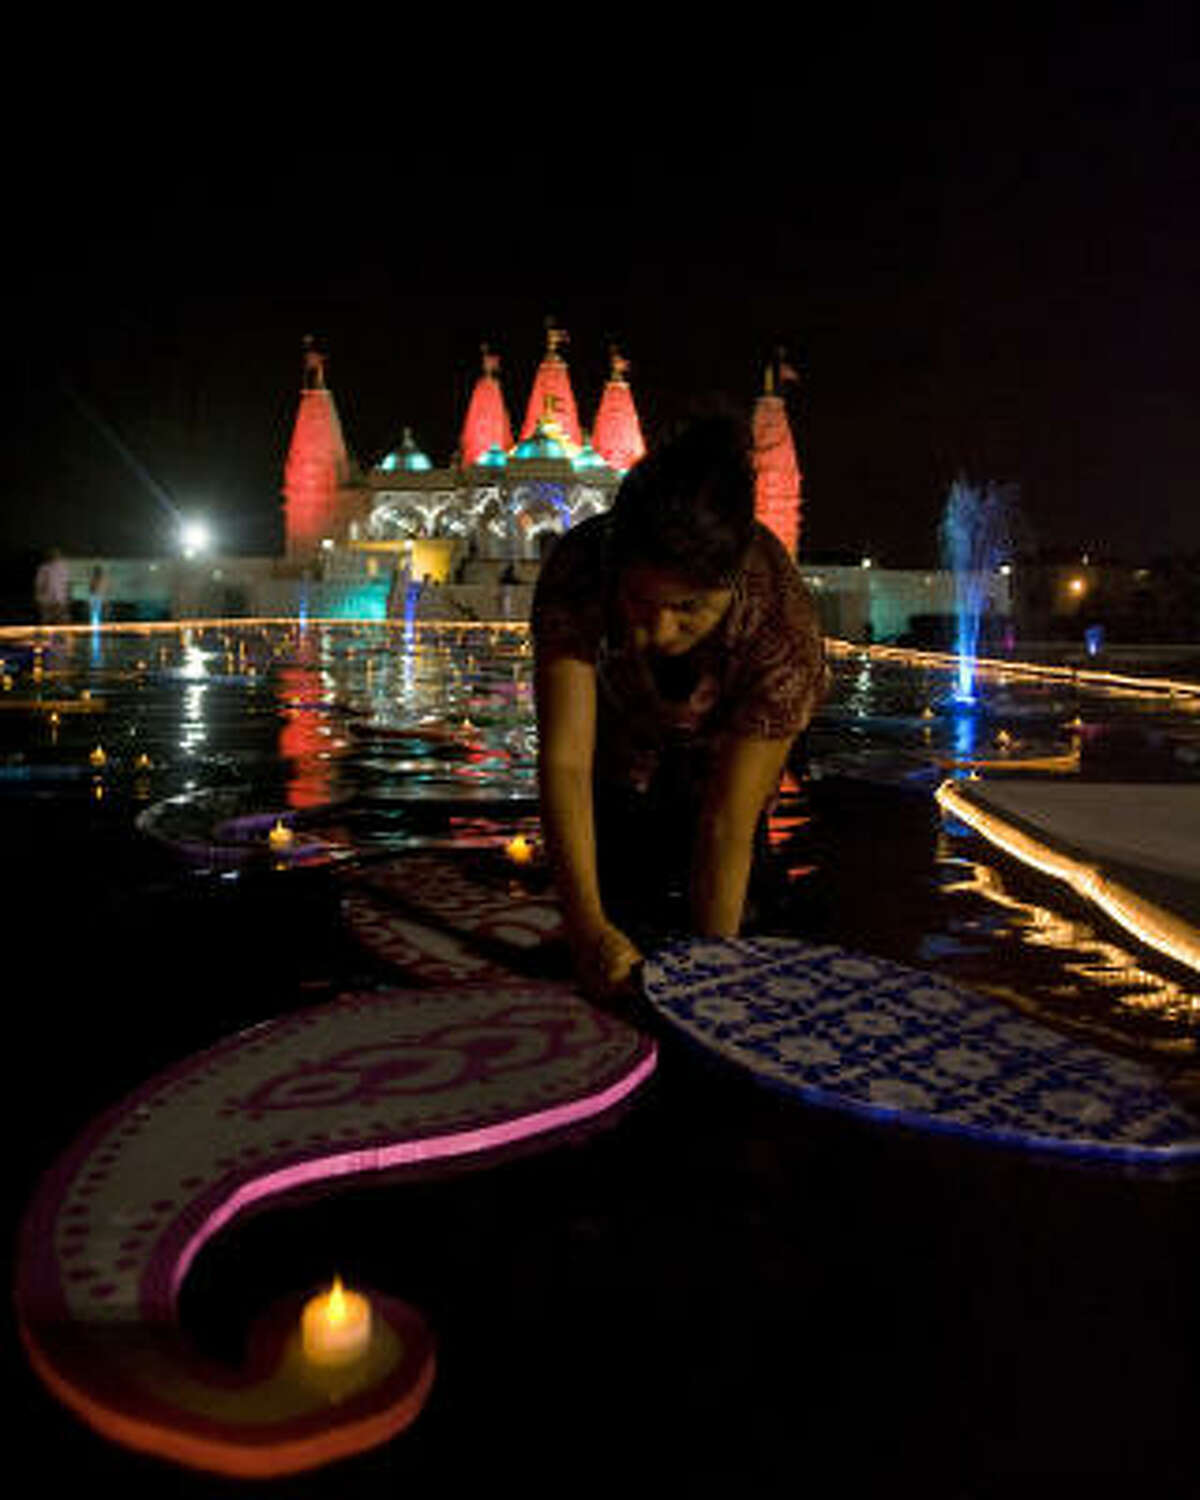 Parul June places battery powered teacup candles on decorations in a reflection pond.